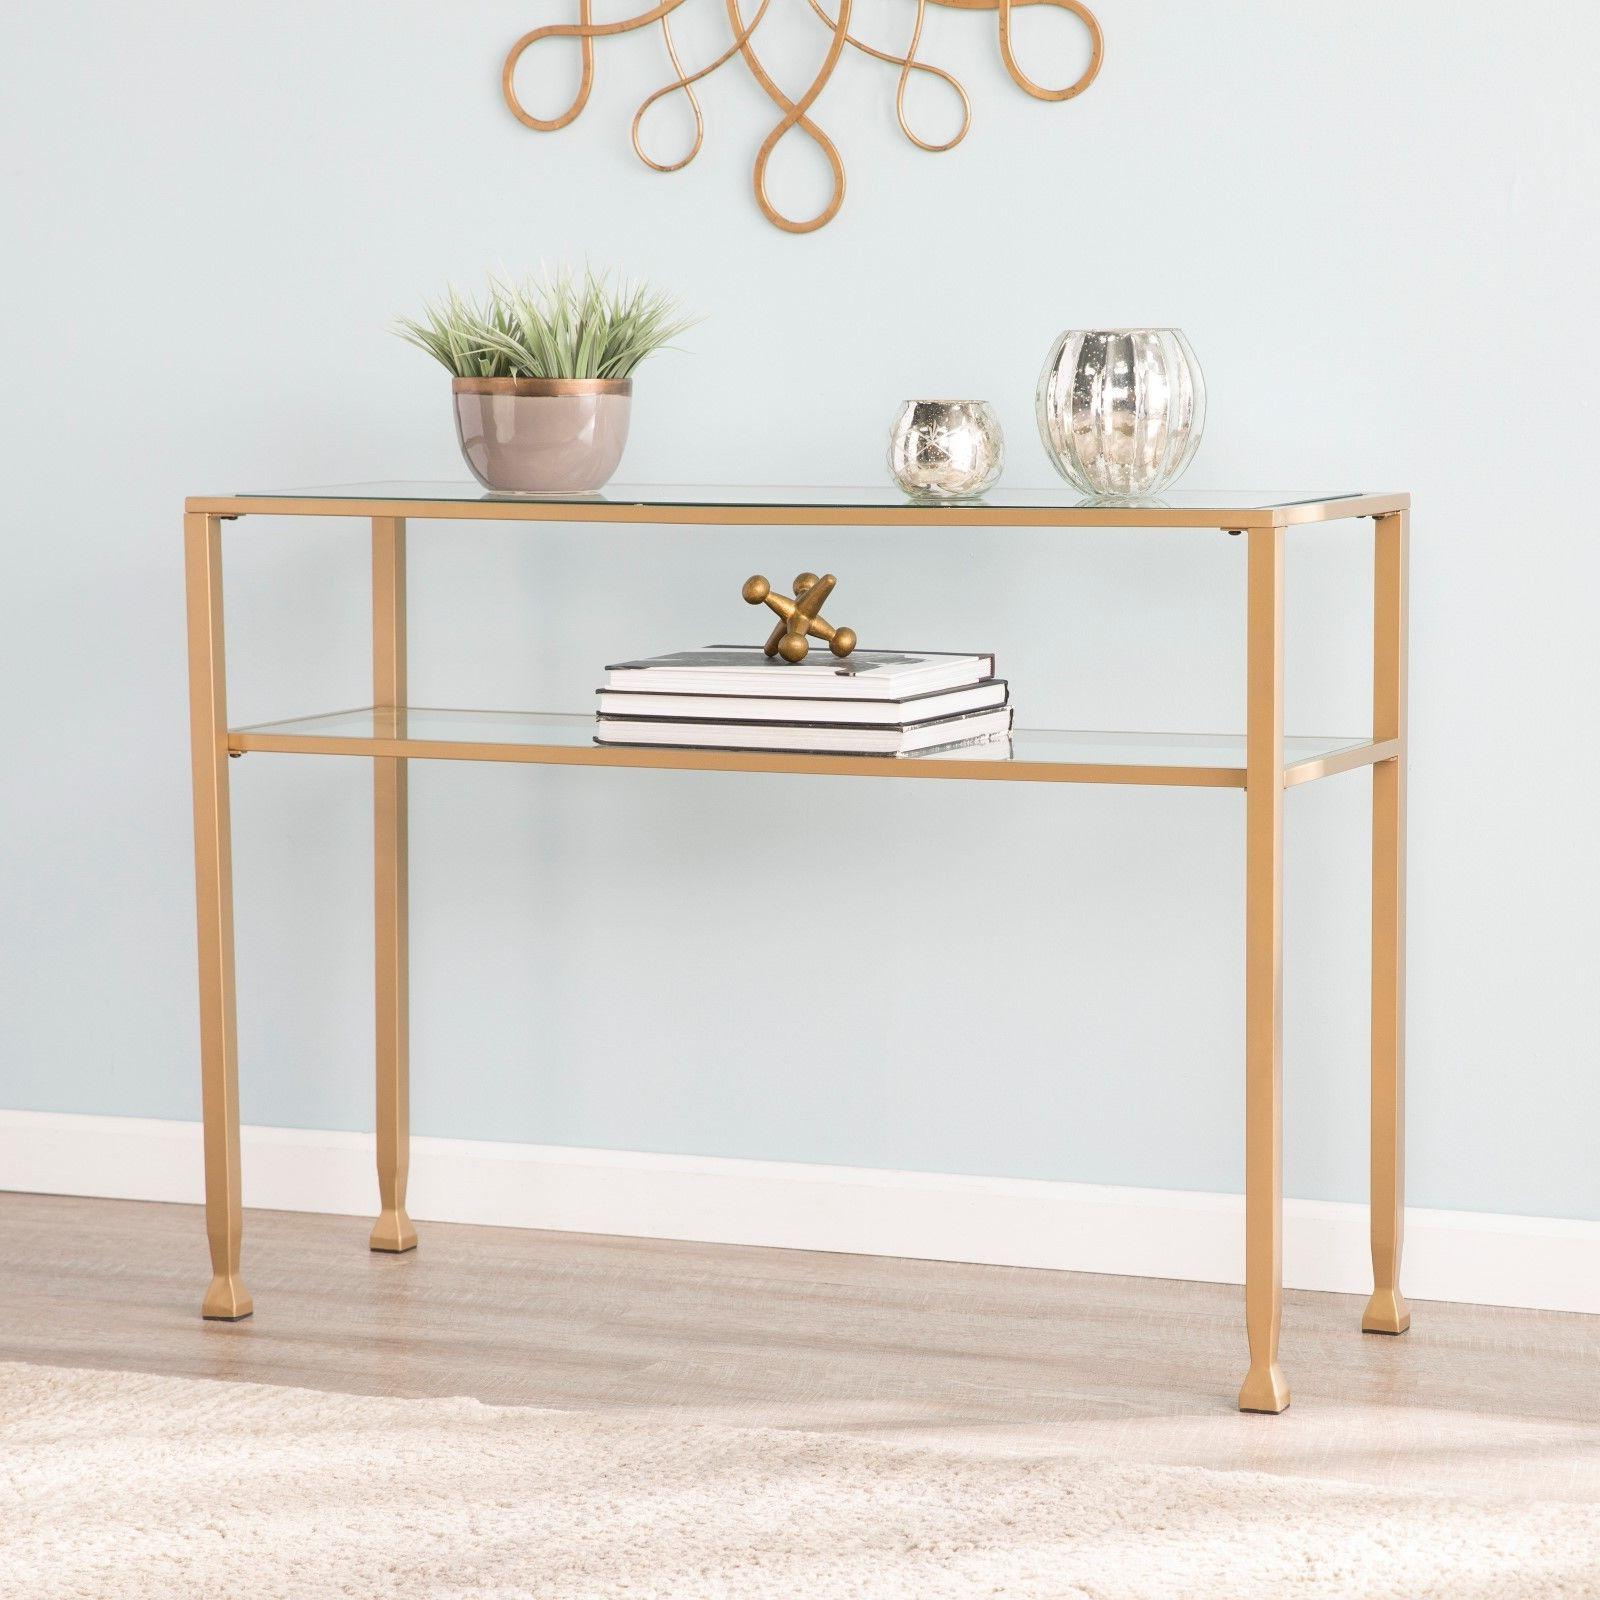 jst37575 gold metal glass sofa console table